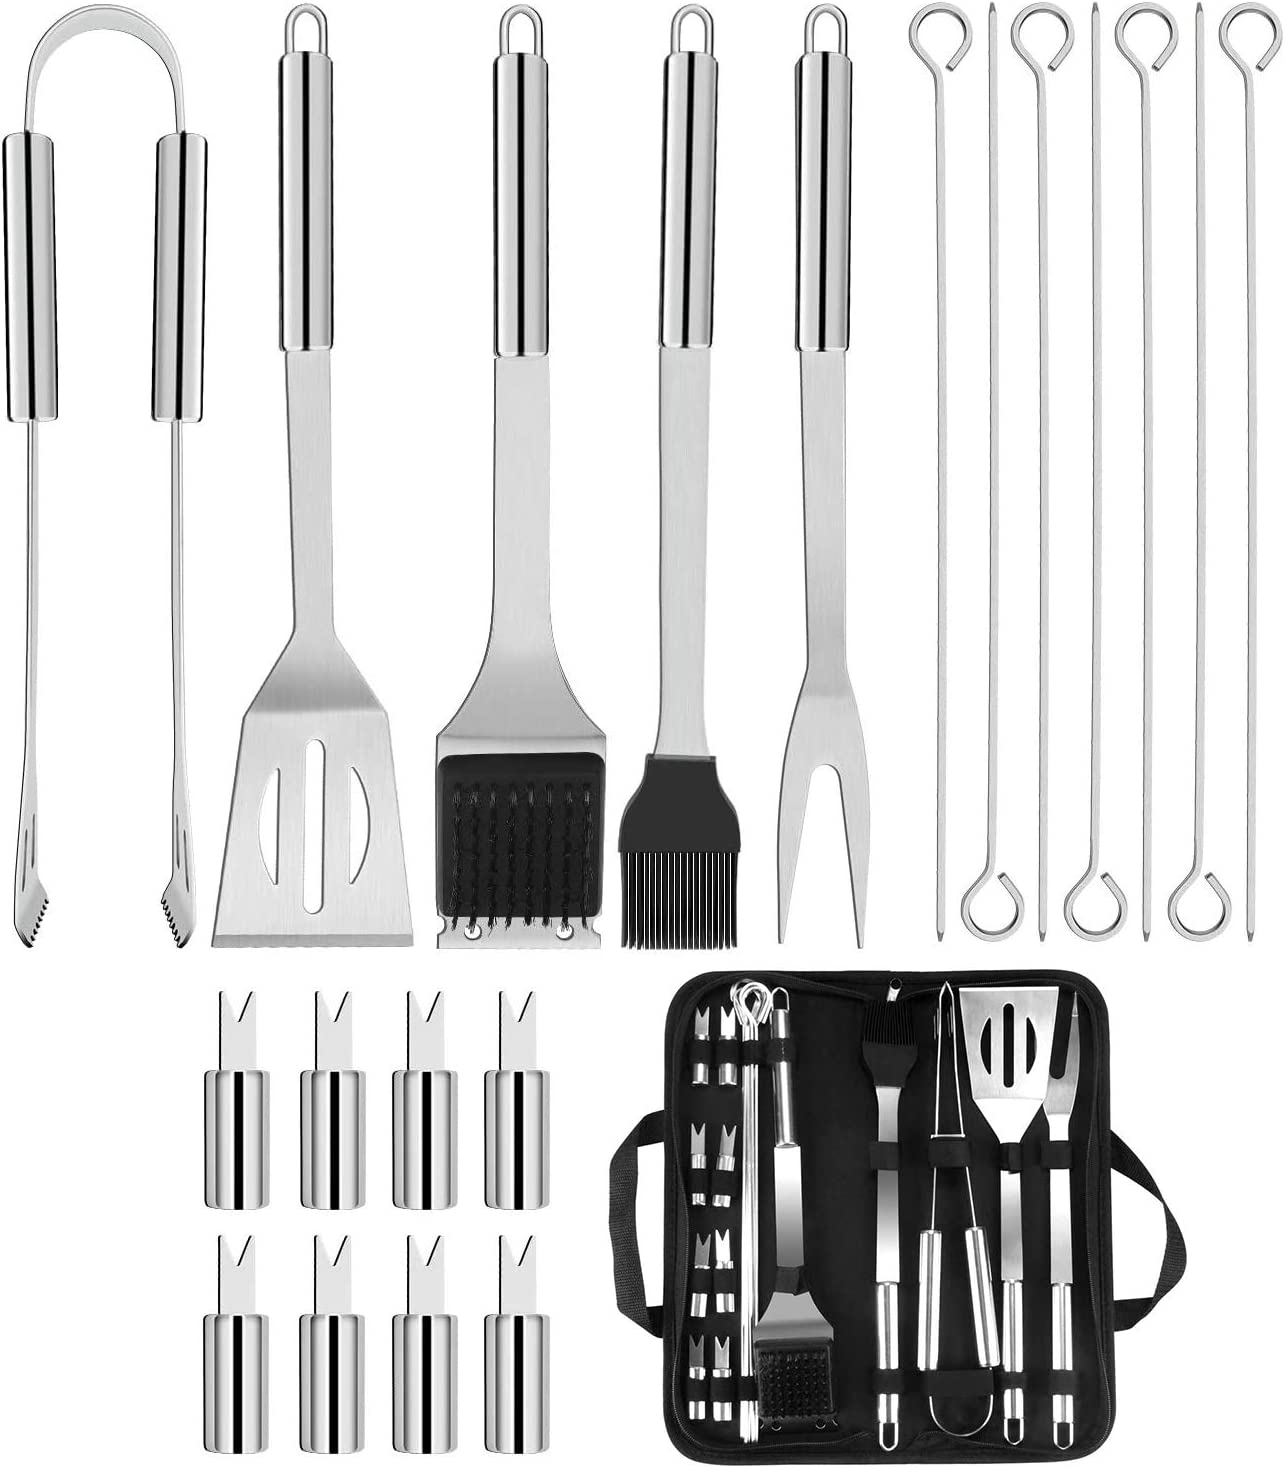 BBQ Tools Set for Picnics Complete Outdoor Barbecue Grill Utensils Set BBQ Barbecue Tool Set 20 Pcs Stainless Steel Barbecue Accessories with Storage Bags Camping and Outdoor Activities Travel